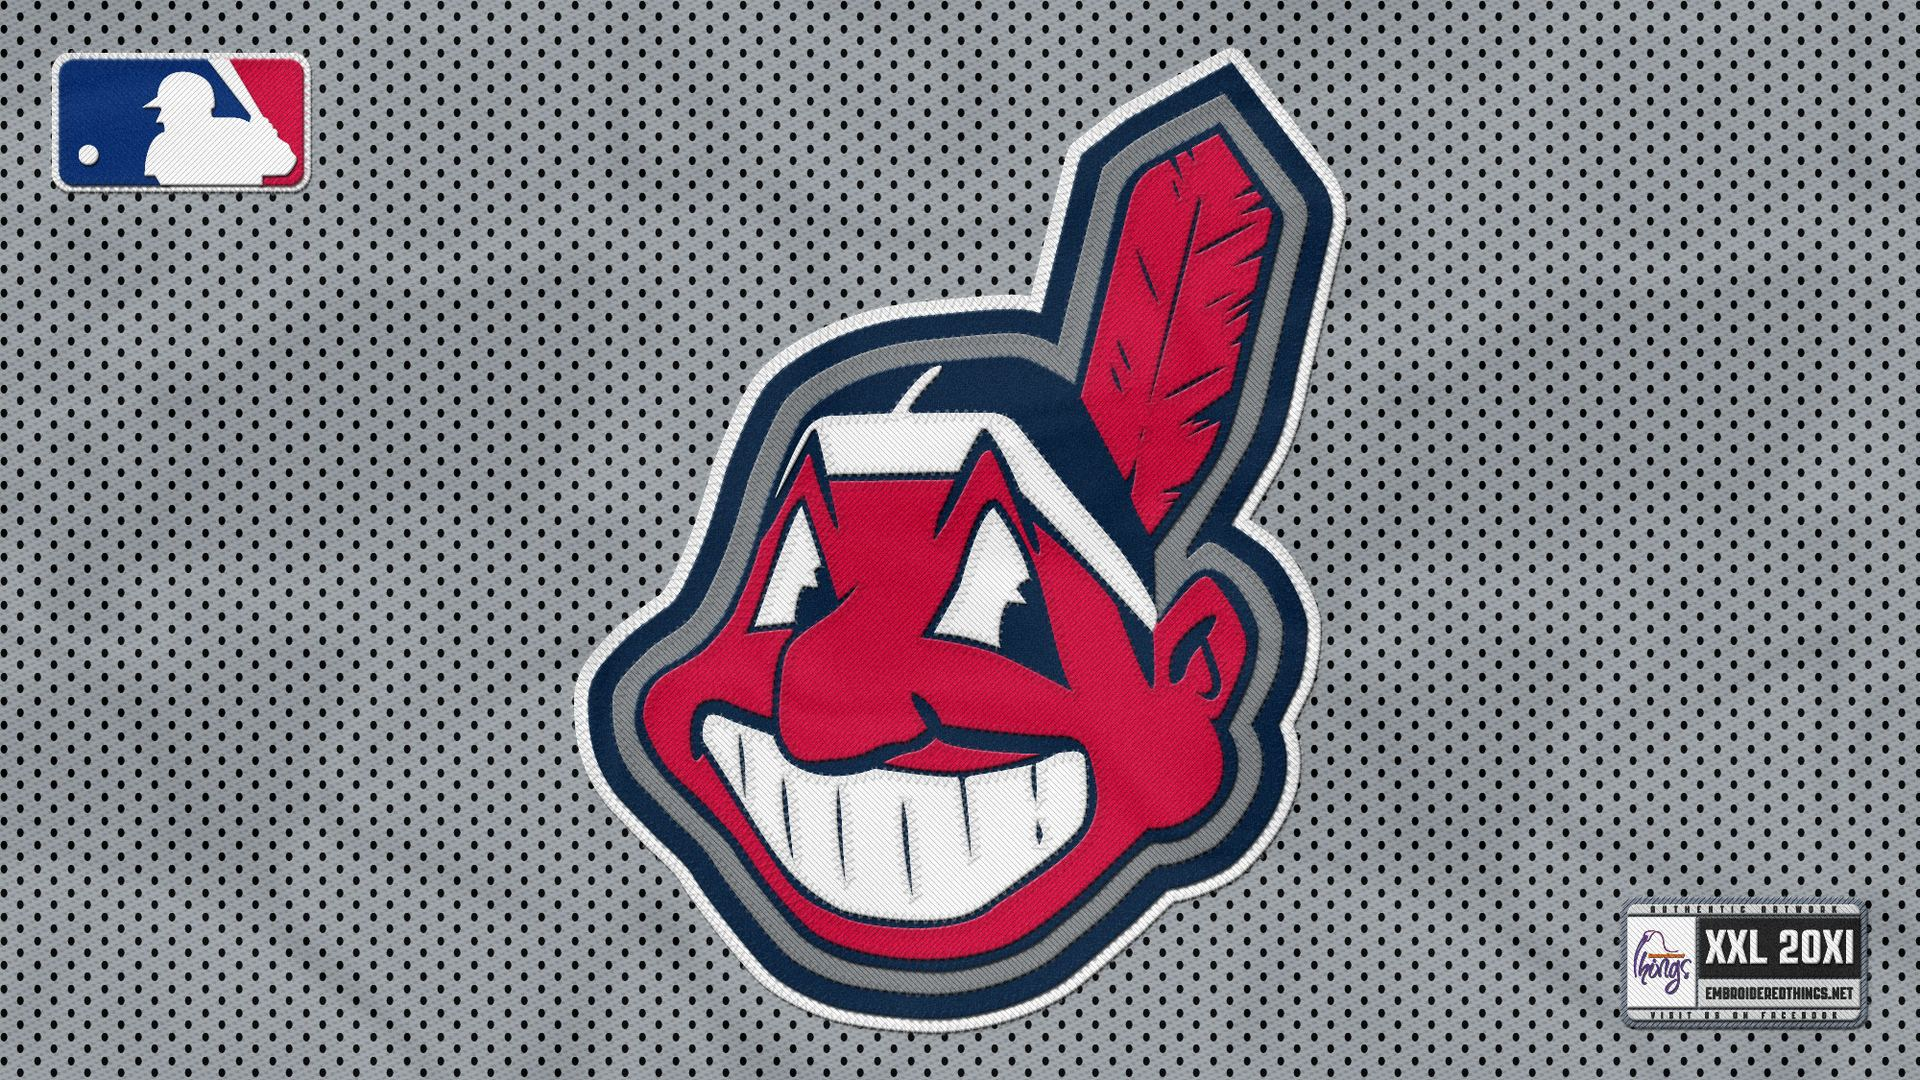 1920x1080 - Cleveland Indians Wallpapers 6